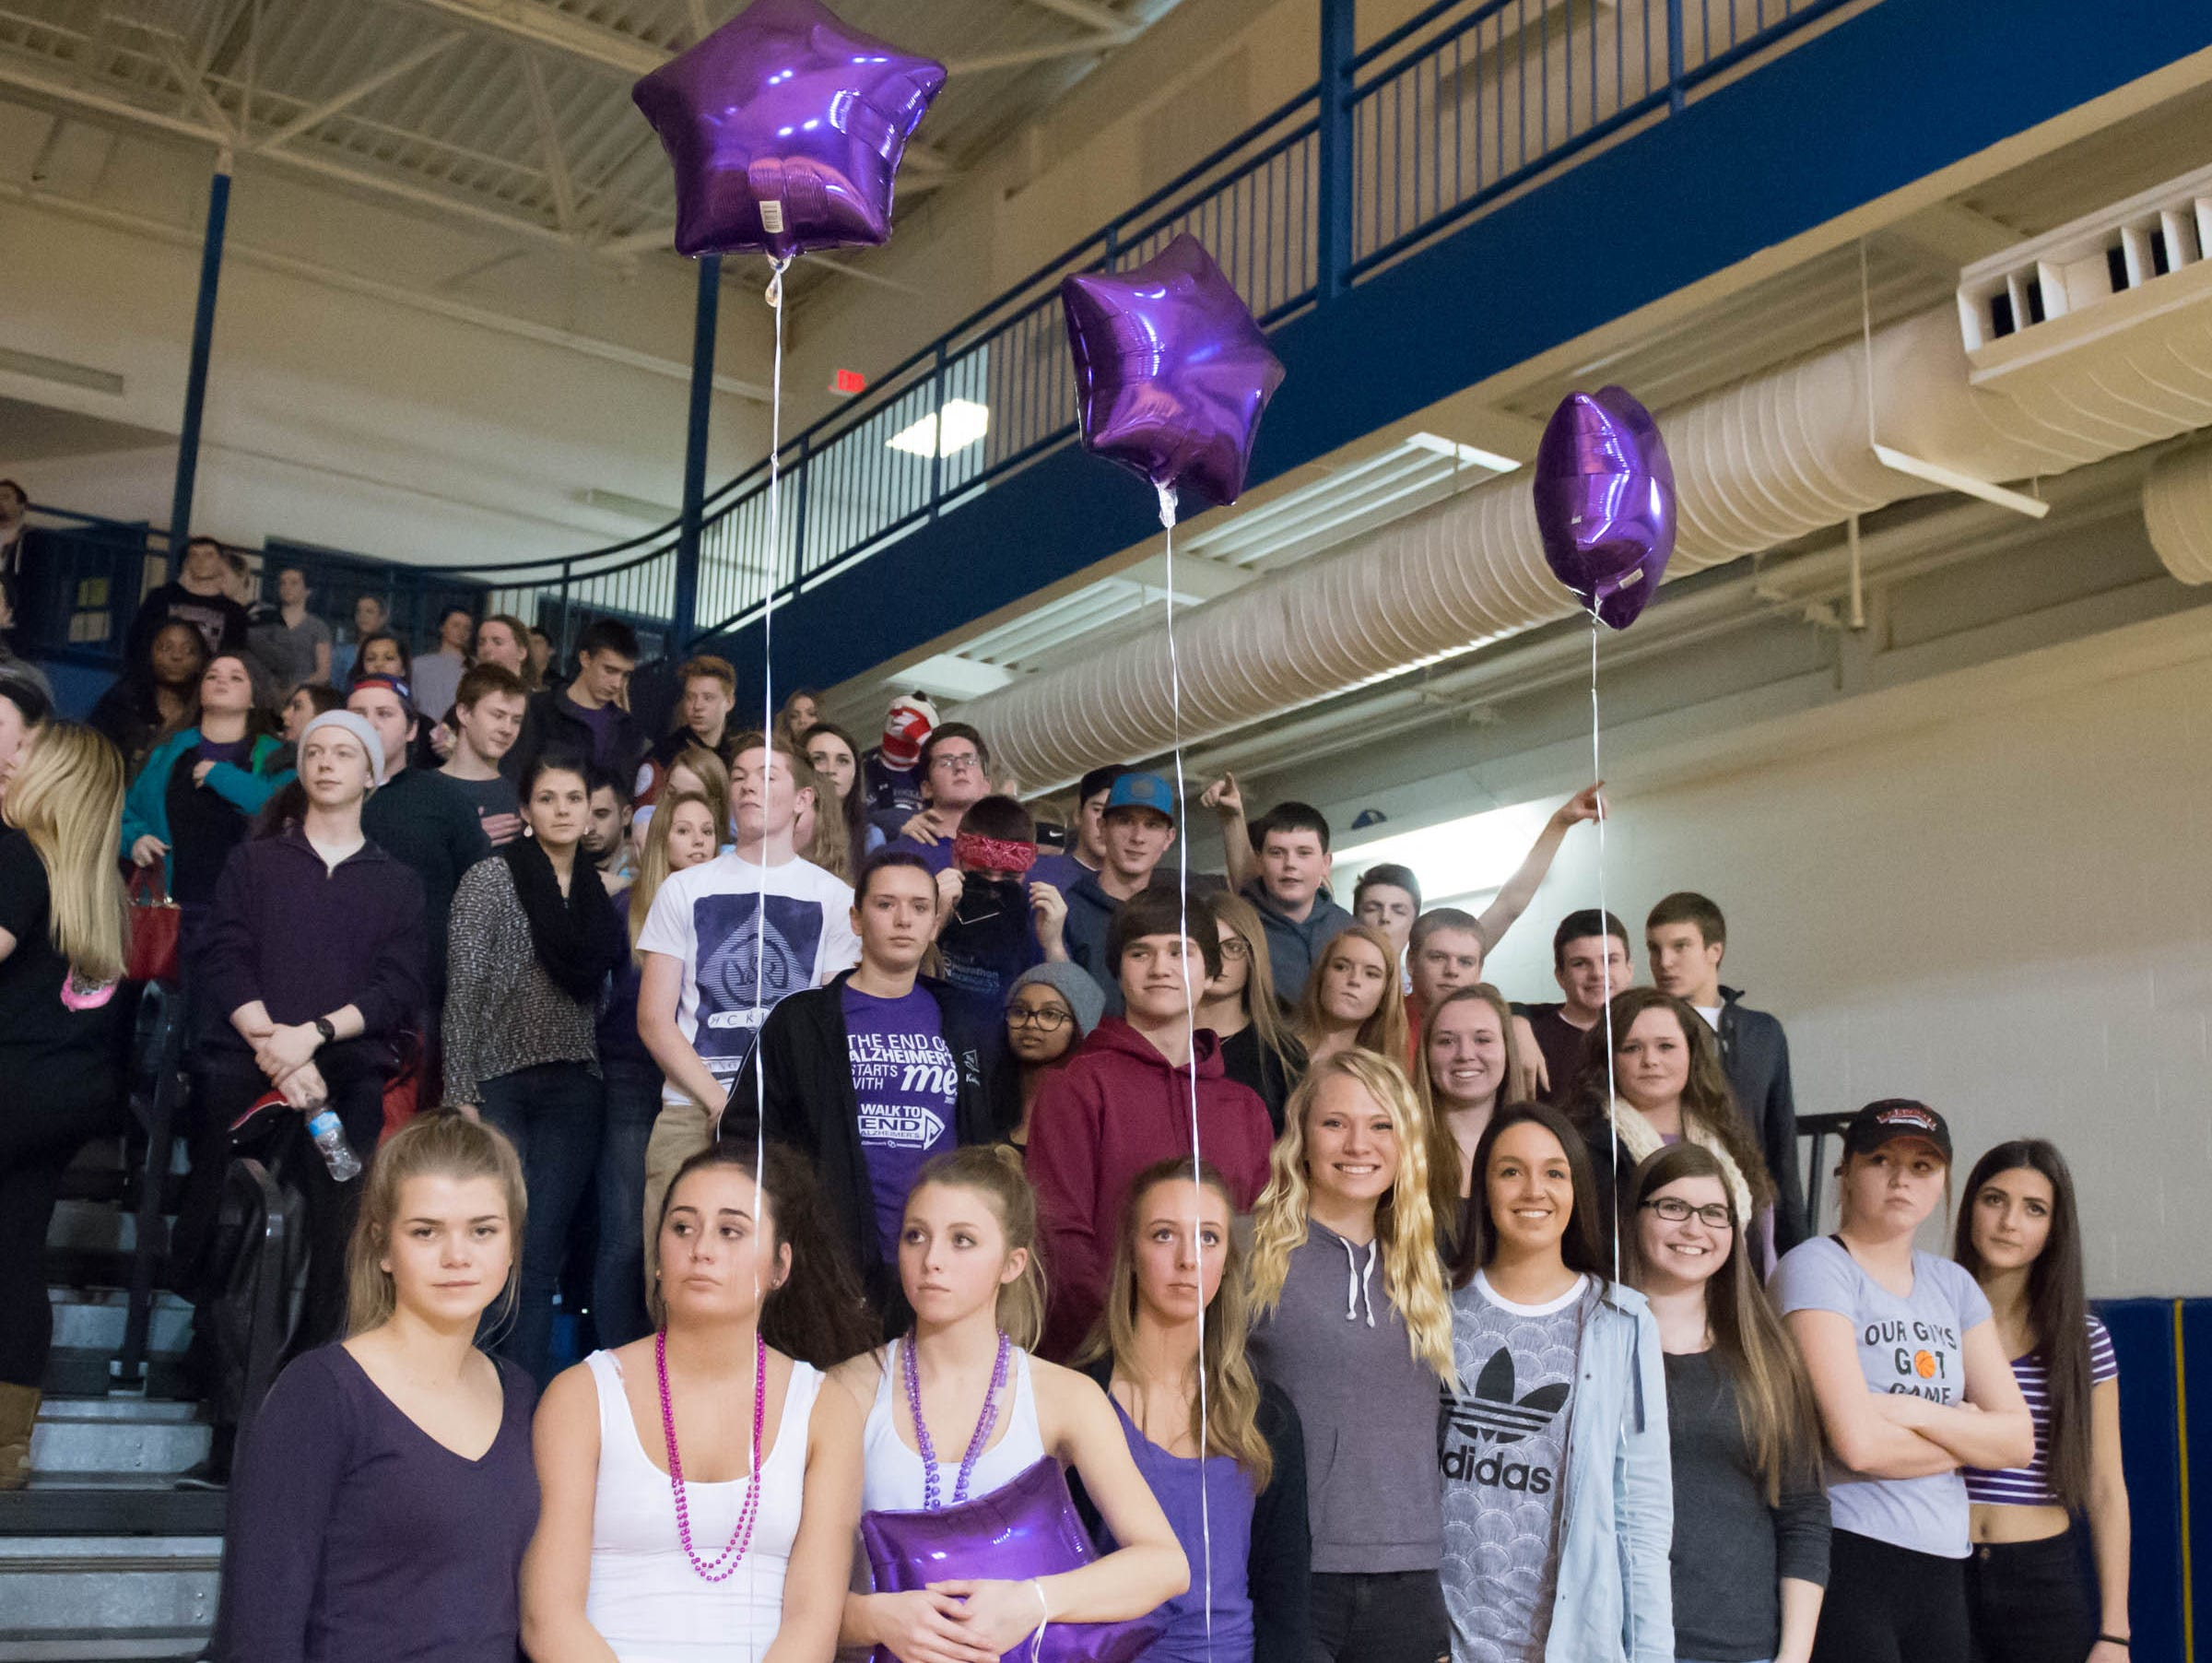 The Marshall student section wore purple to honor former Marshall player and teacher Kari Searles Jolink, who passed on Wednesday after a long fight with cancer.